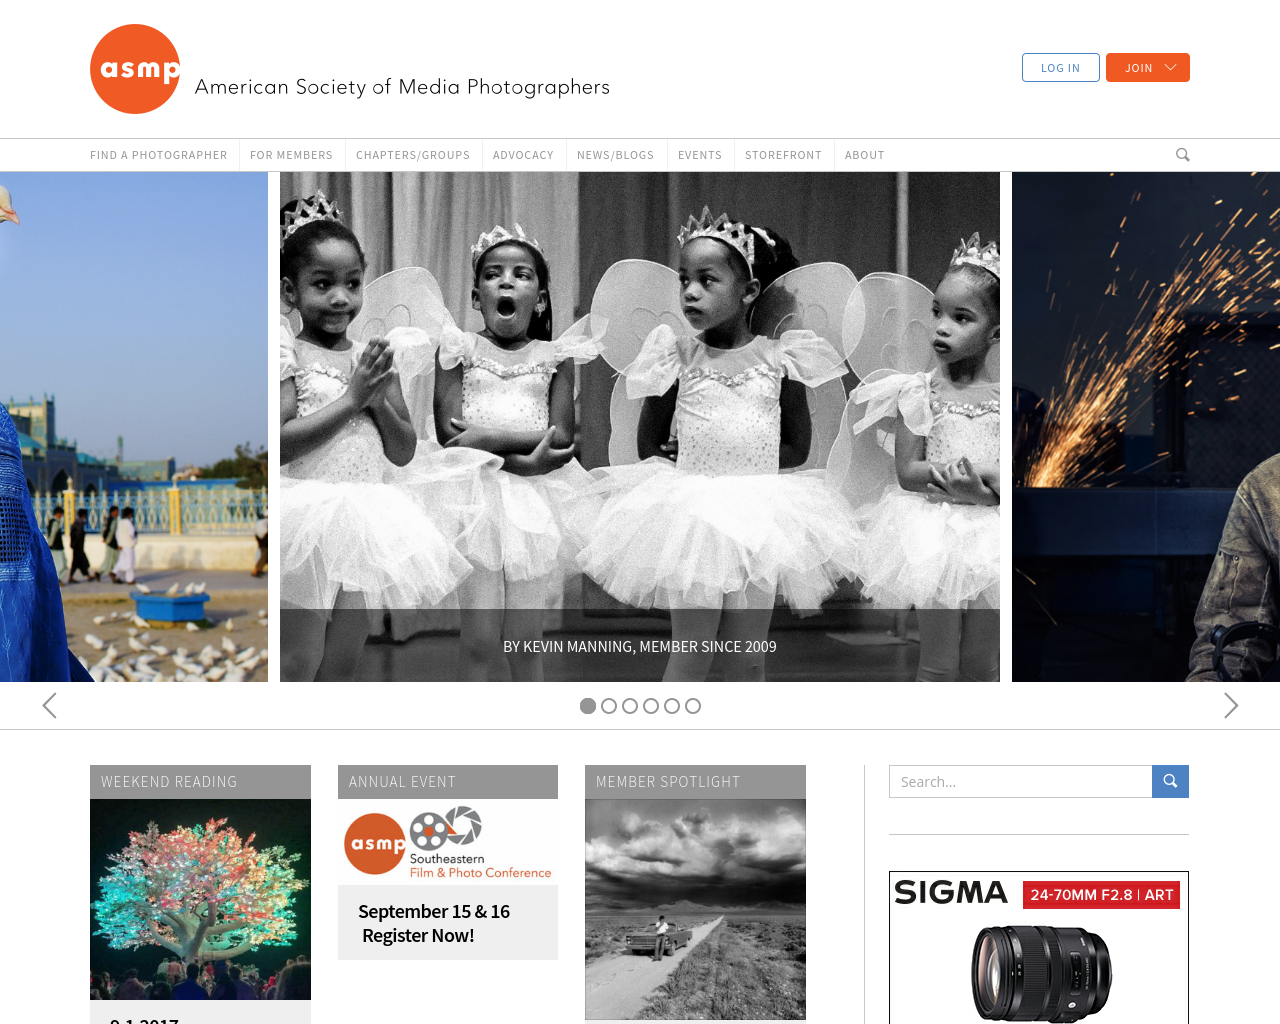 ASMP-American-Society-Of-Media-Photographers-Advertising-Reviews-Pricing